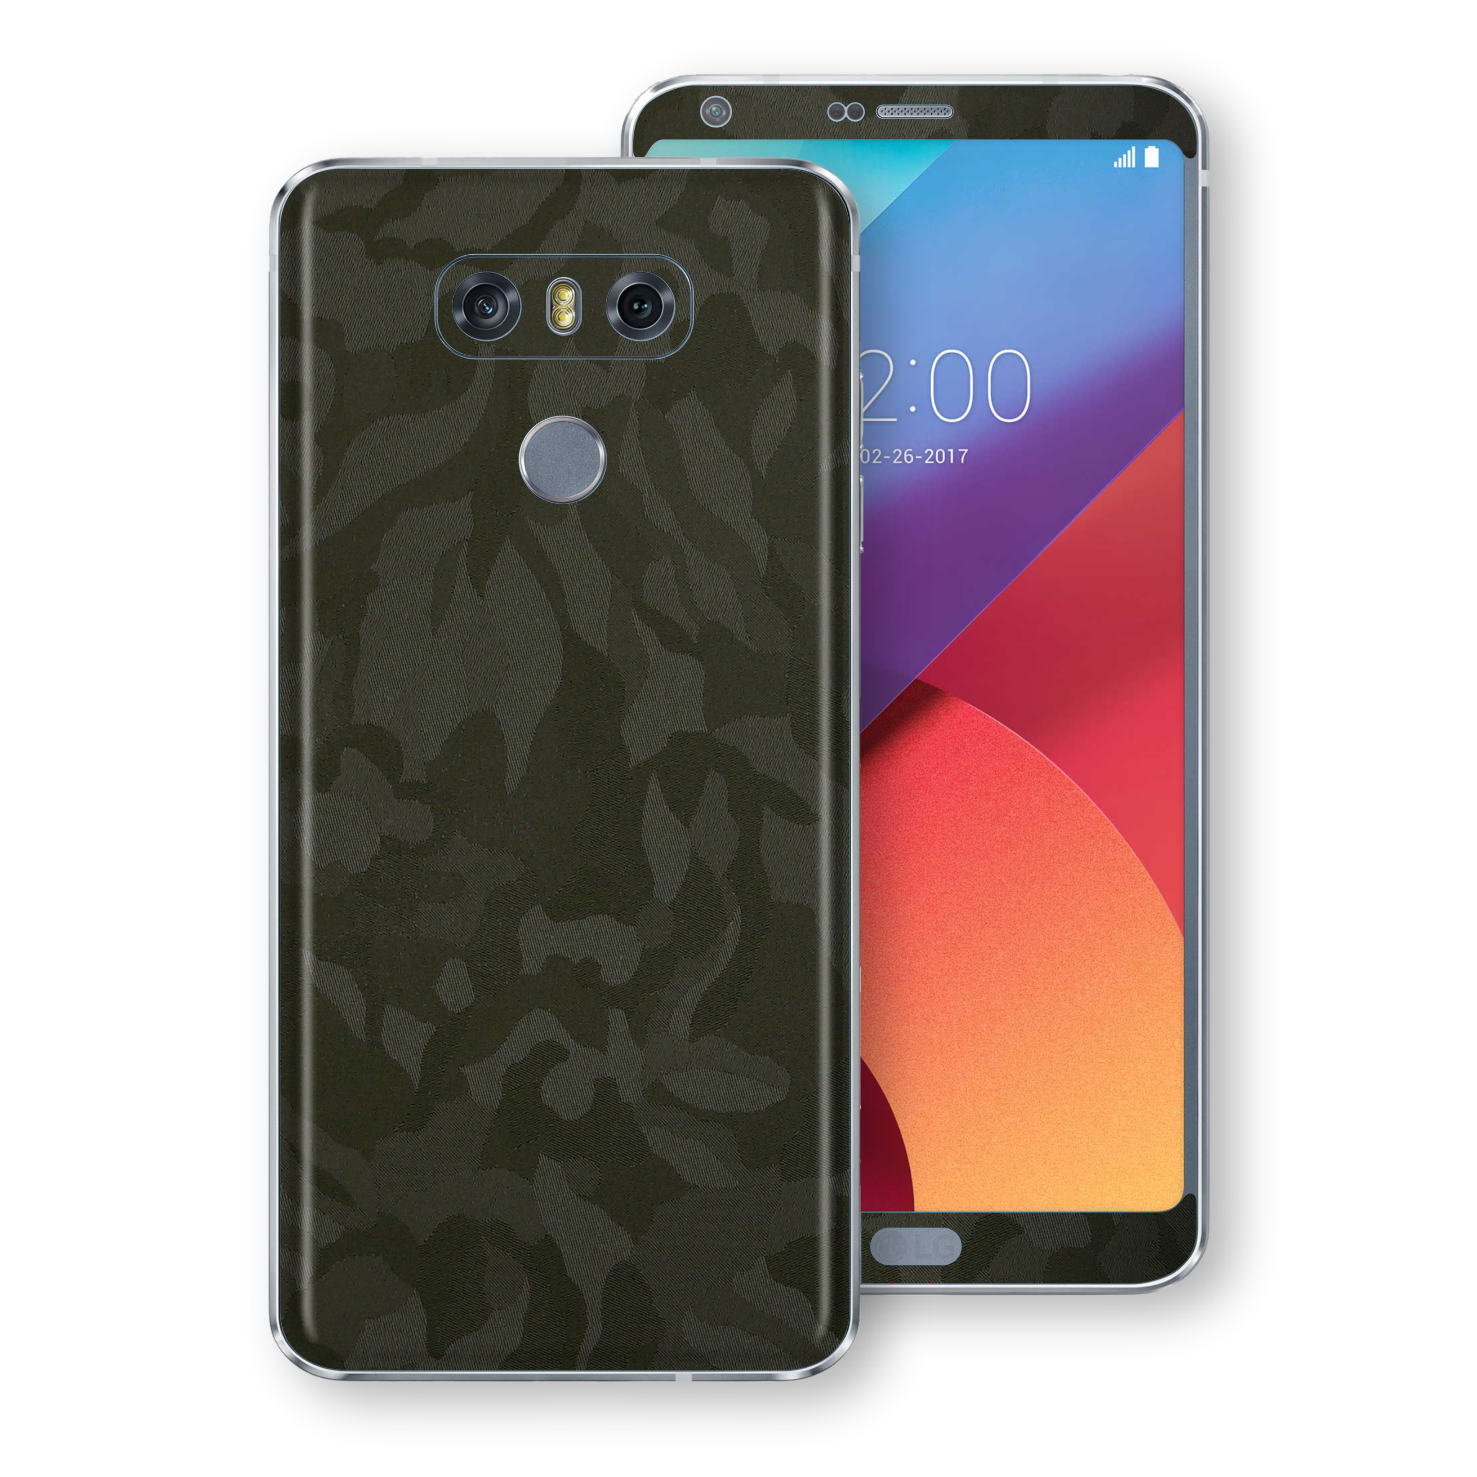 LG G6 Luxuria Green Camo Camouflage 3D Textured Skin Wrap Decal Protector | EasySkinz